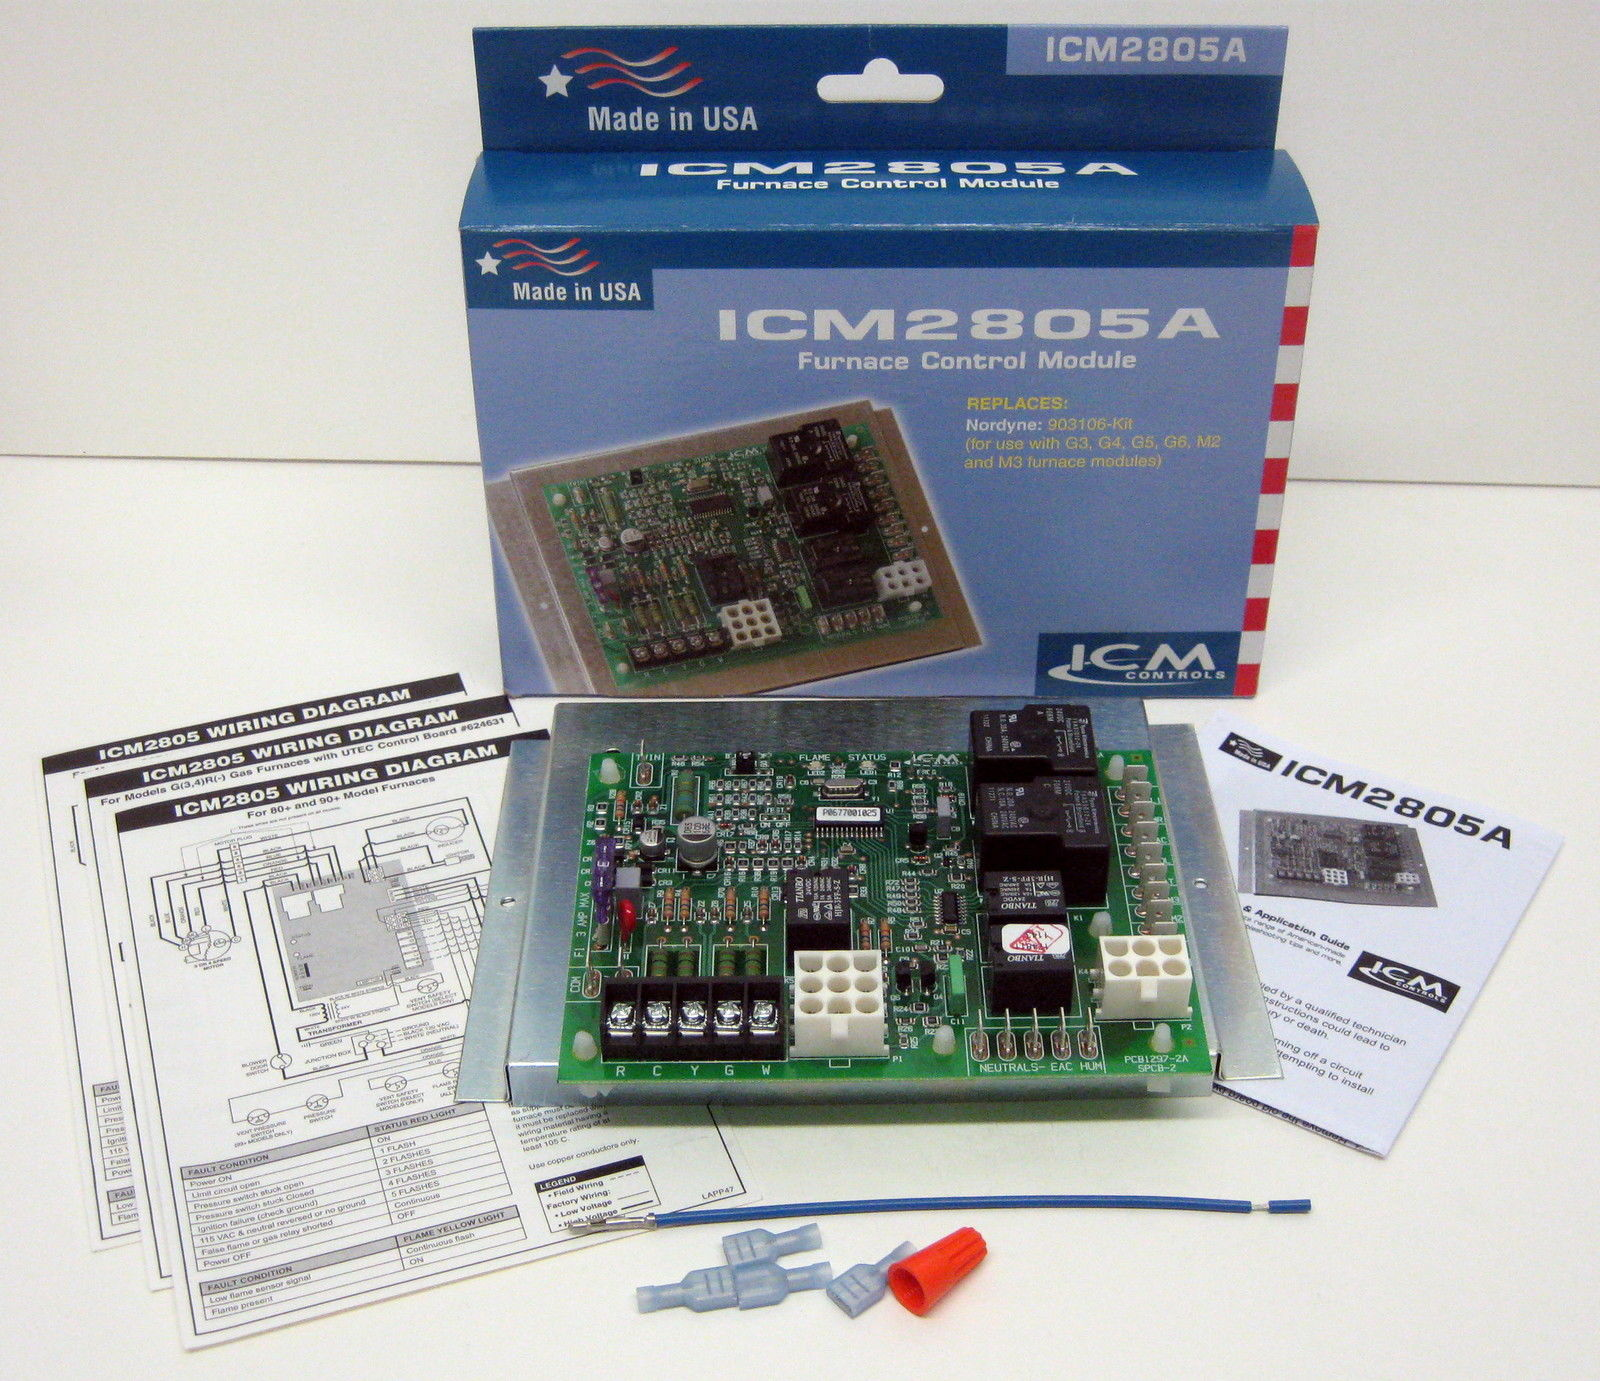 Details about ICM2805A ICM Furnace Control Board for Nordyne Intertherm on